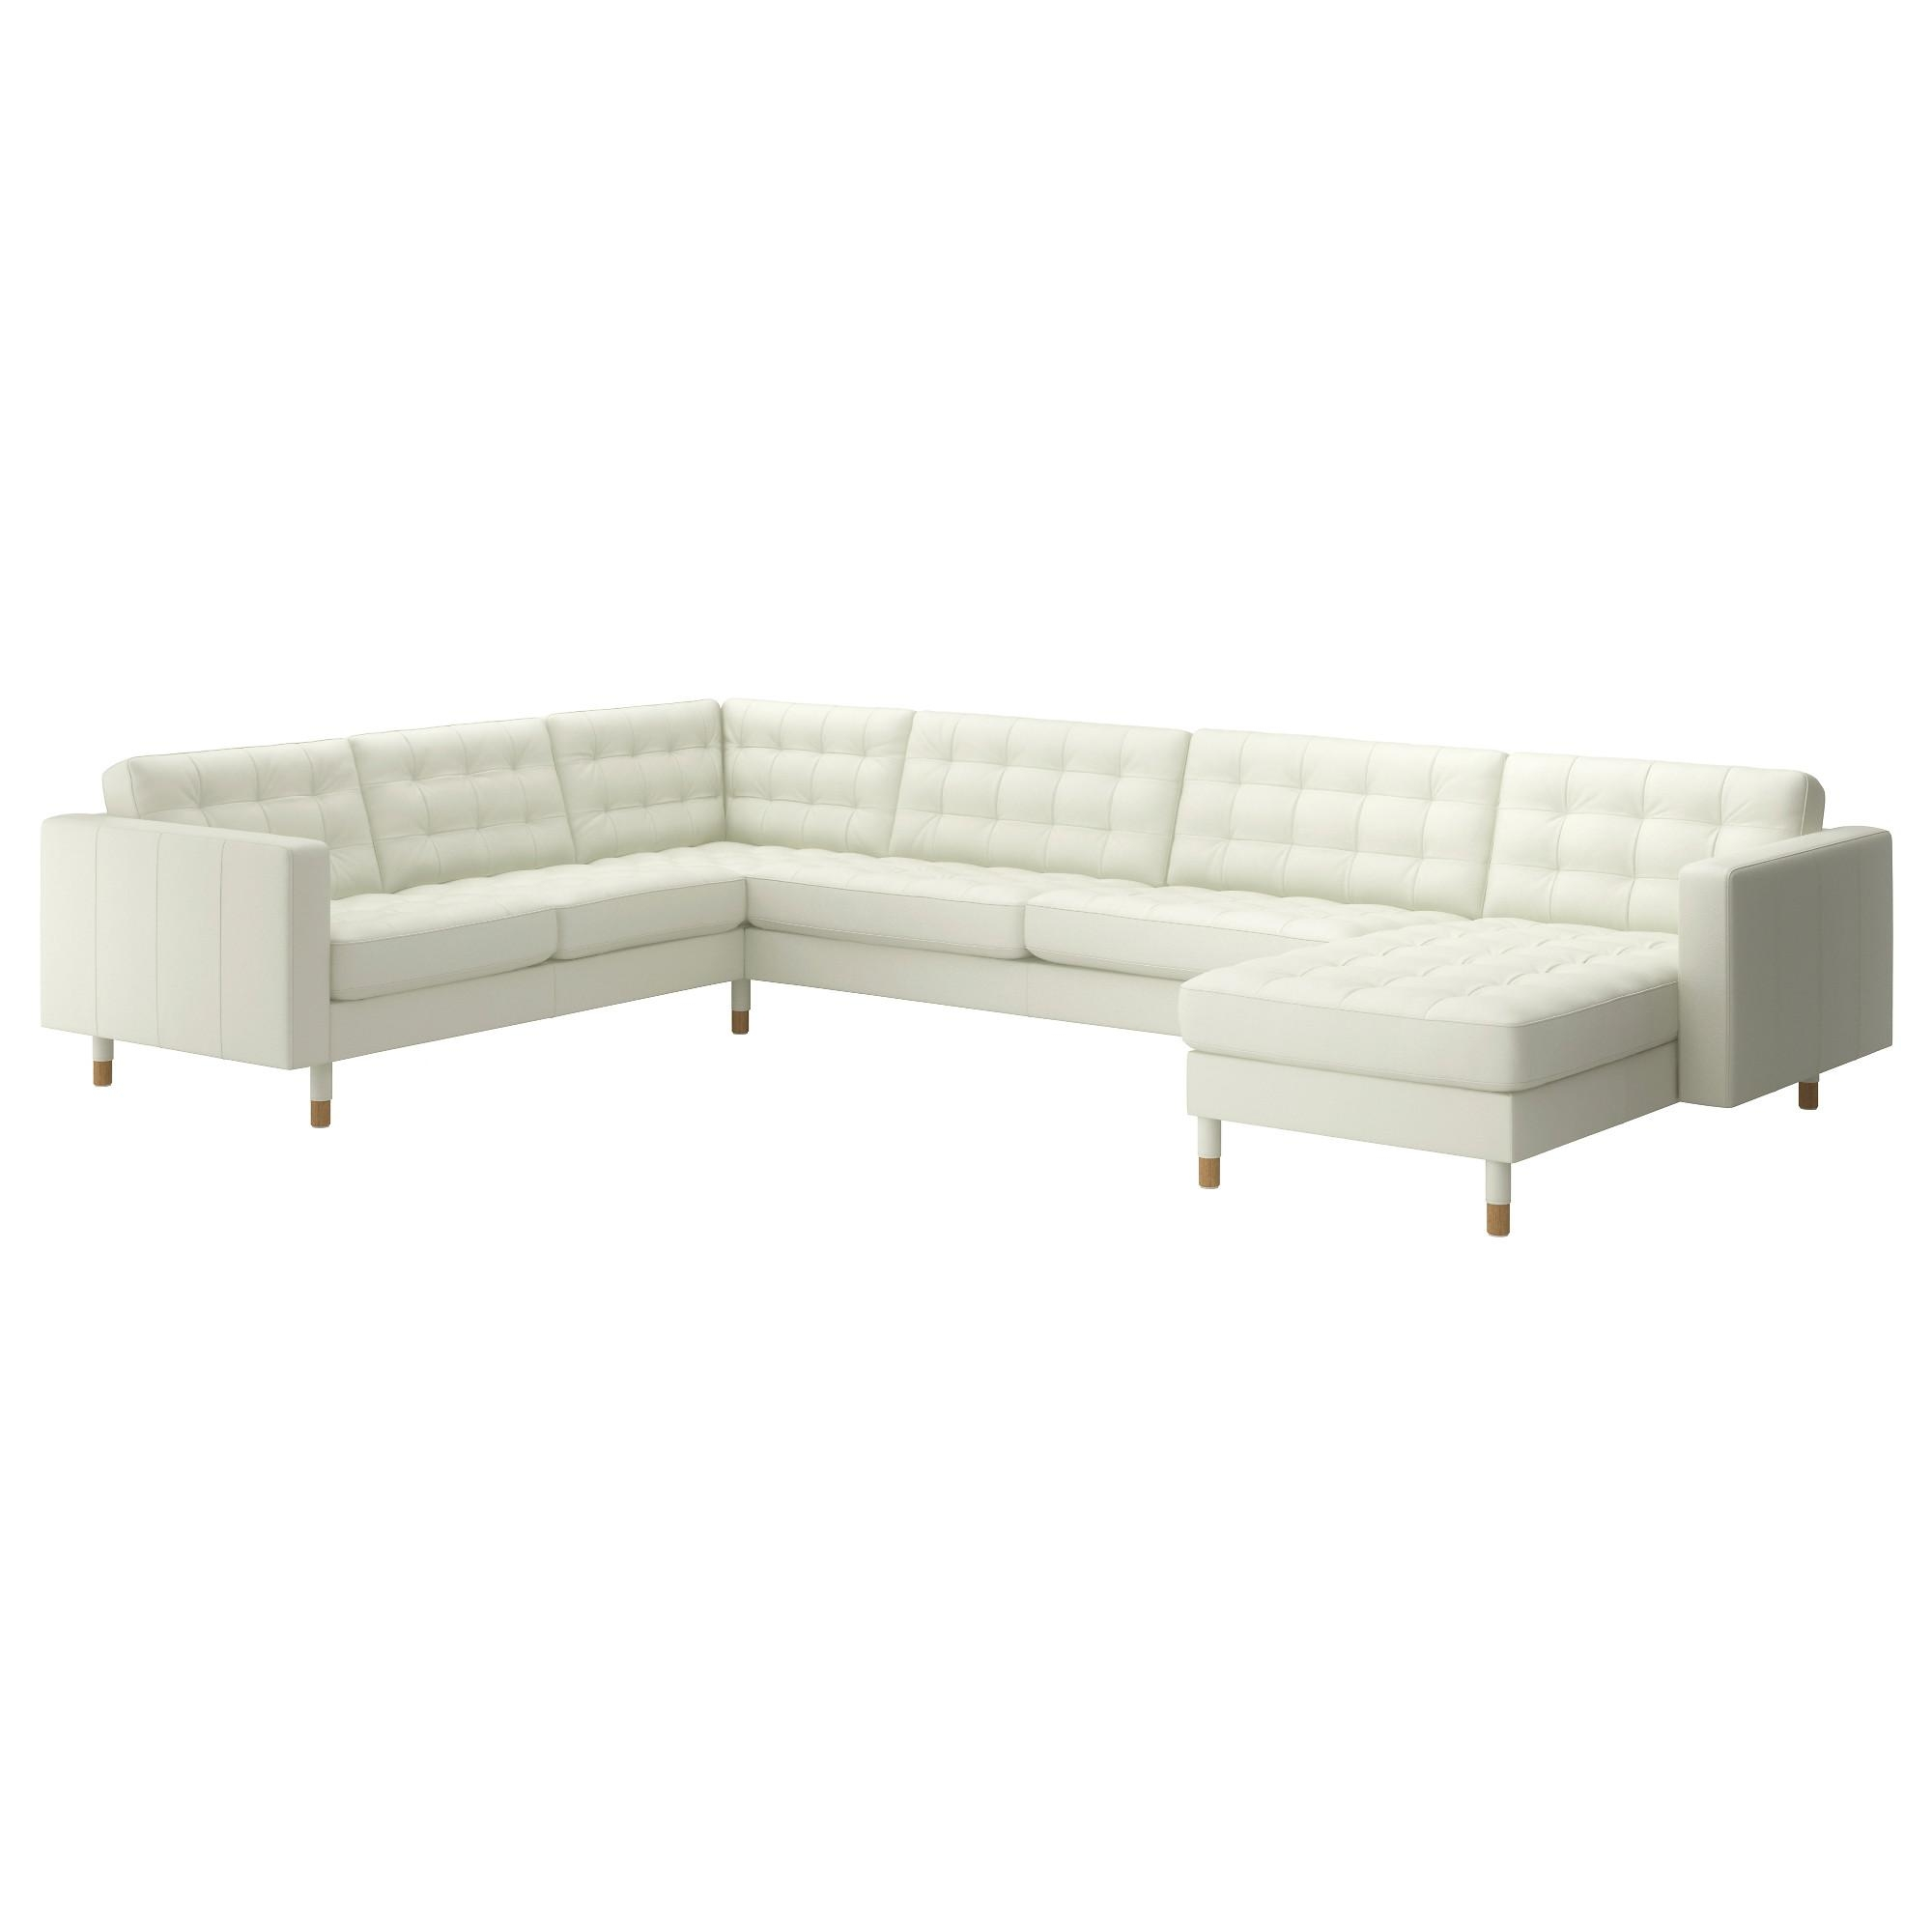 Sectional Sofas & Couches – Ikea Throughout Short Sofas (View 13 of 20)